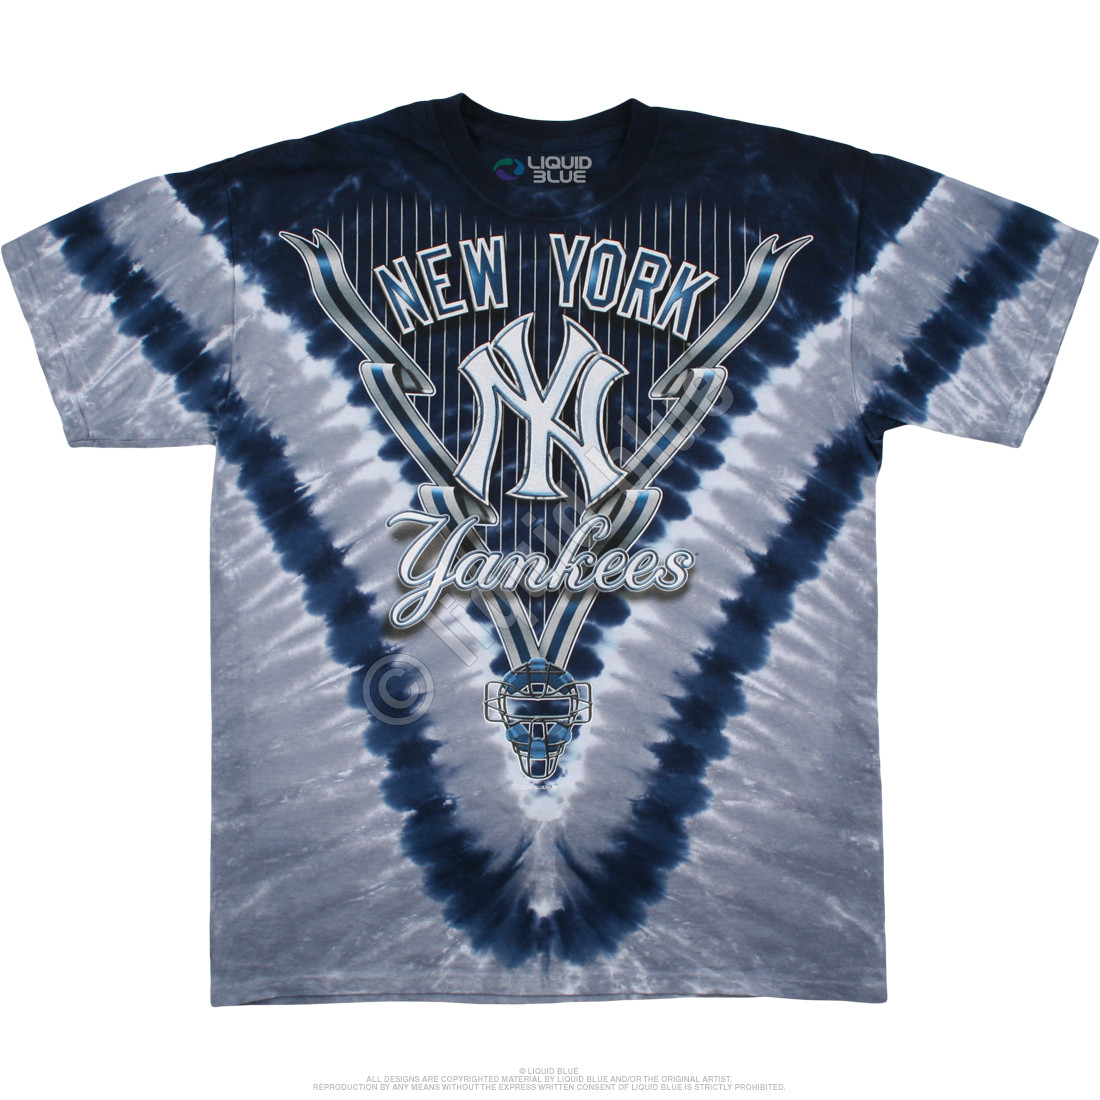 MLB New York Yankees V Tie-Dye T-Shirt Tee Liquid Blue e2c2ae57d28